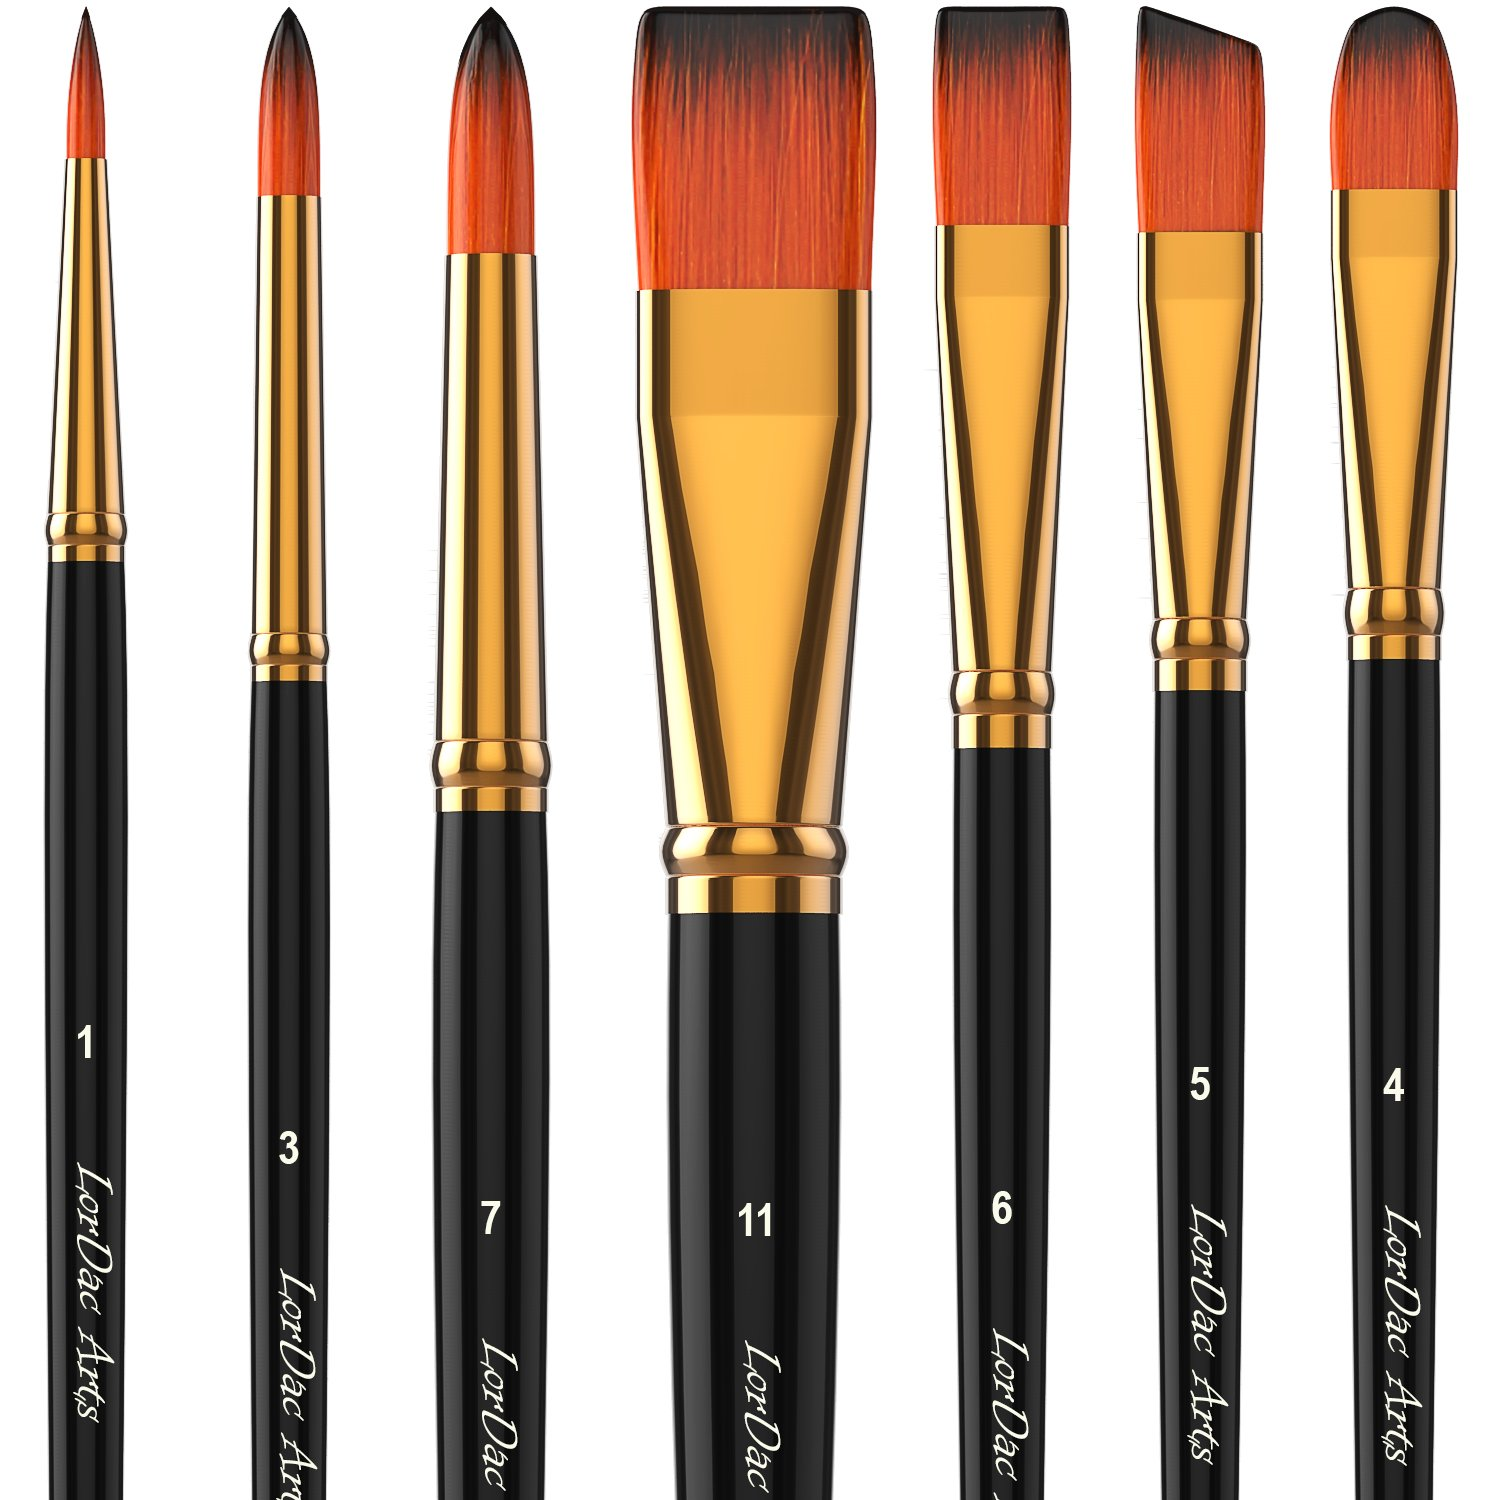 LorDac Arts Paint Brush Set, 7 Artist Brushes for Painting with Acrylic, Oil and Watercolor. Professional Art Quality on Canvas, Wood, Face and Models. Includes Carrying Case Travel Kit